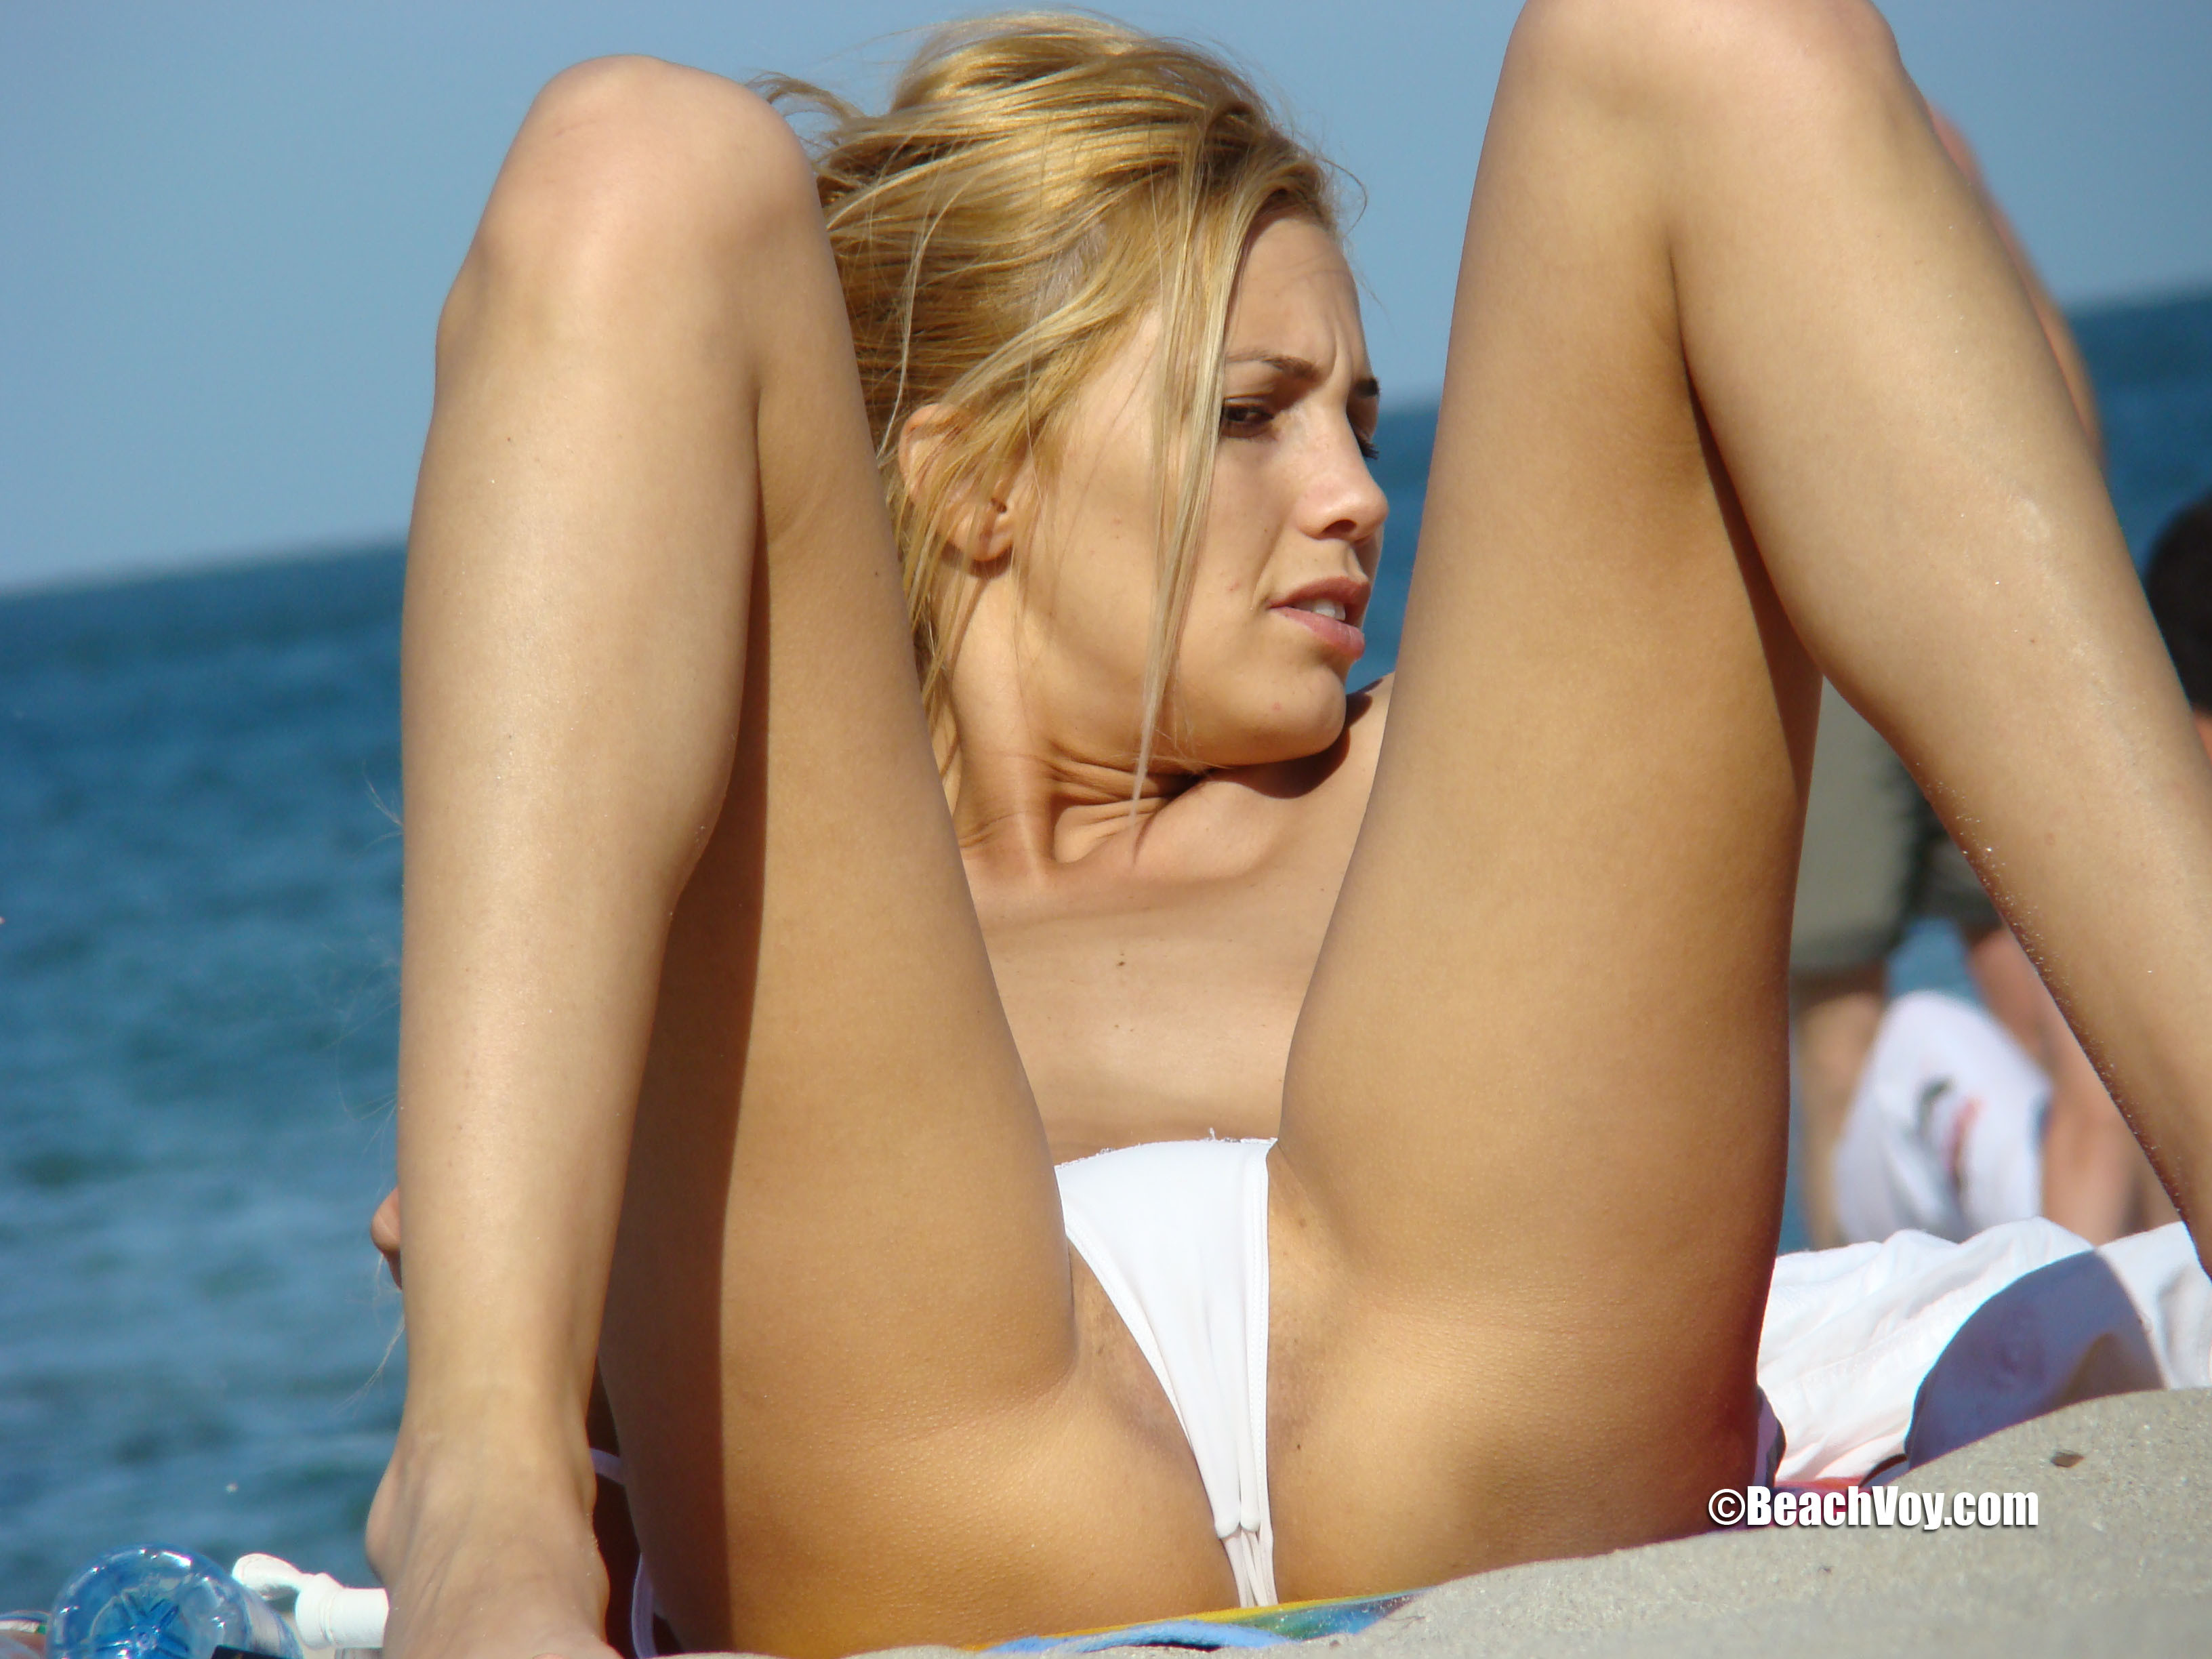 hot pussy in bikini pics gallery - christianlouboutinfr